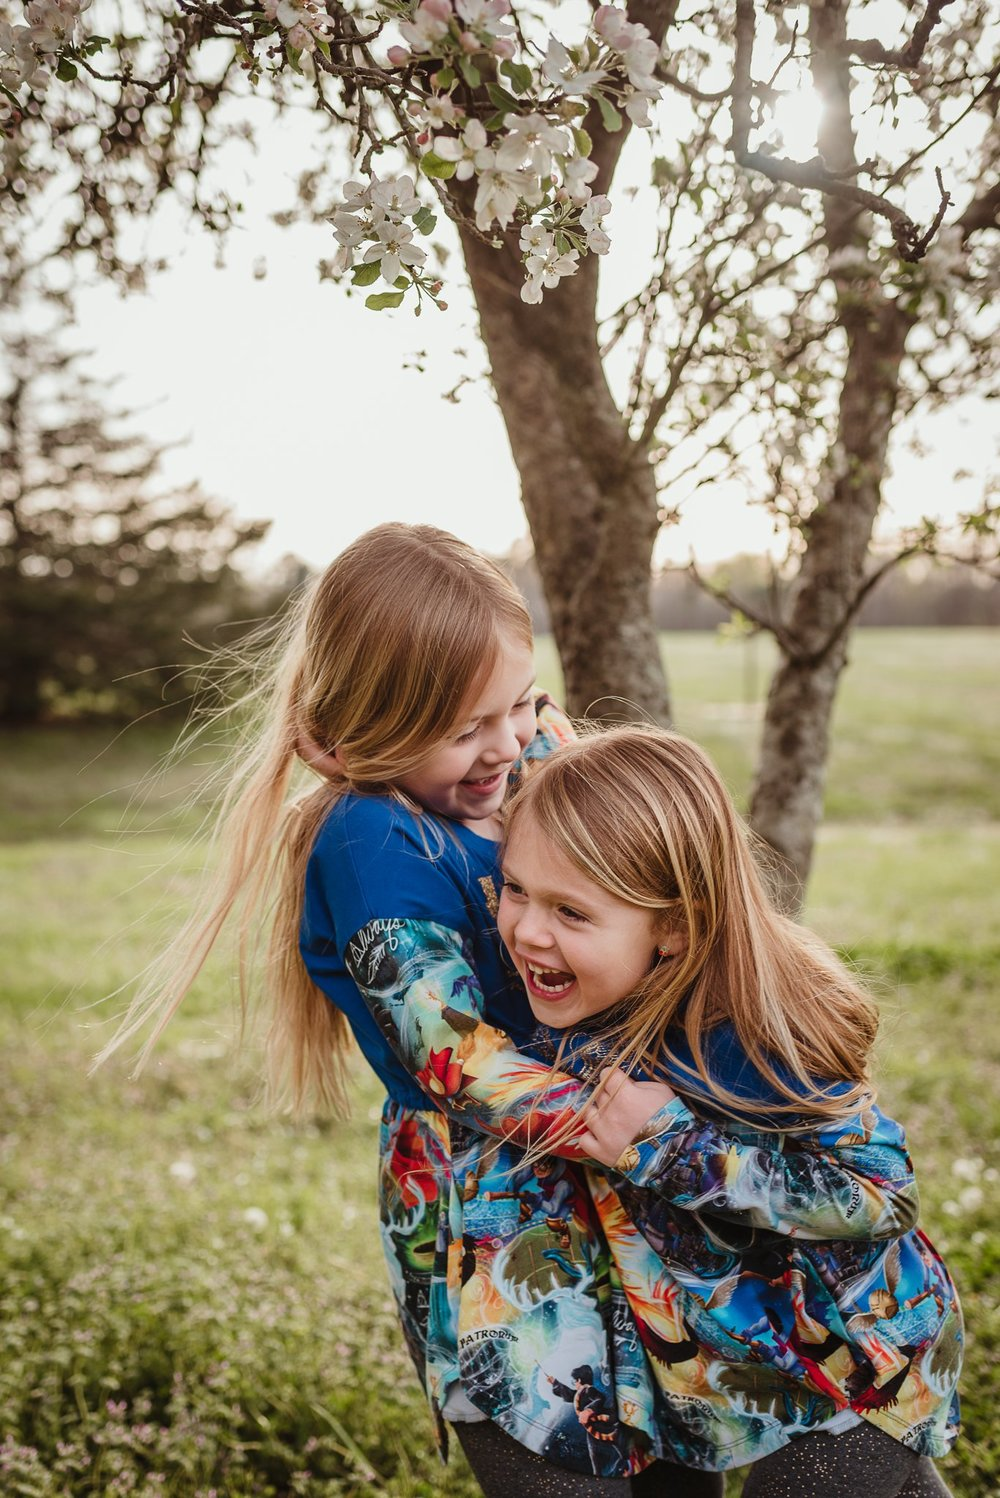 These sisters hugged and posed for Rose Trail Images during their family photo session in Wake Forest, North Carolina.